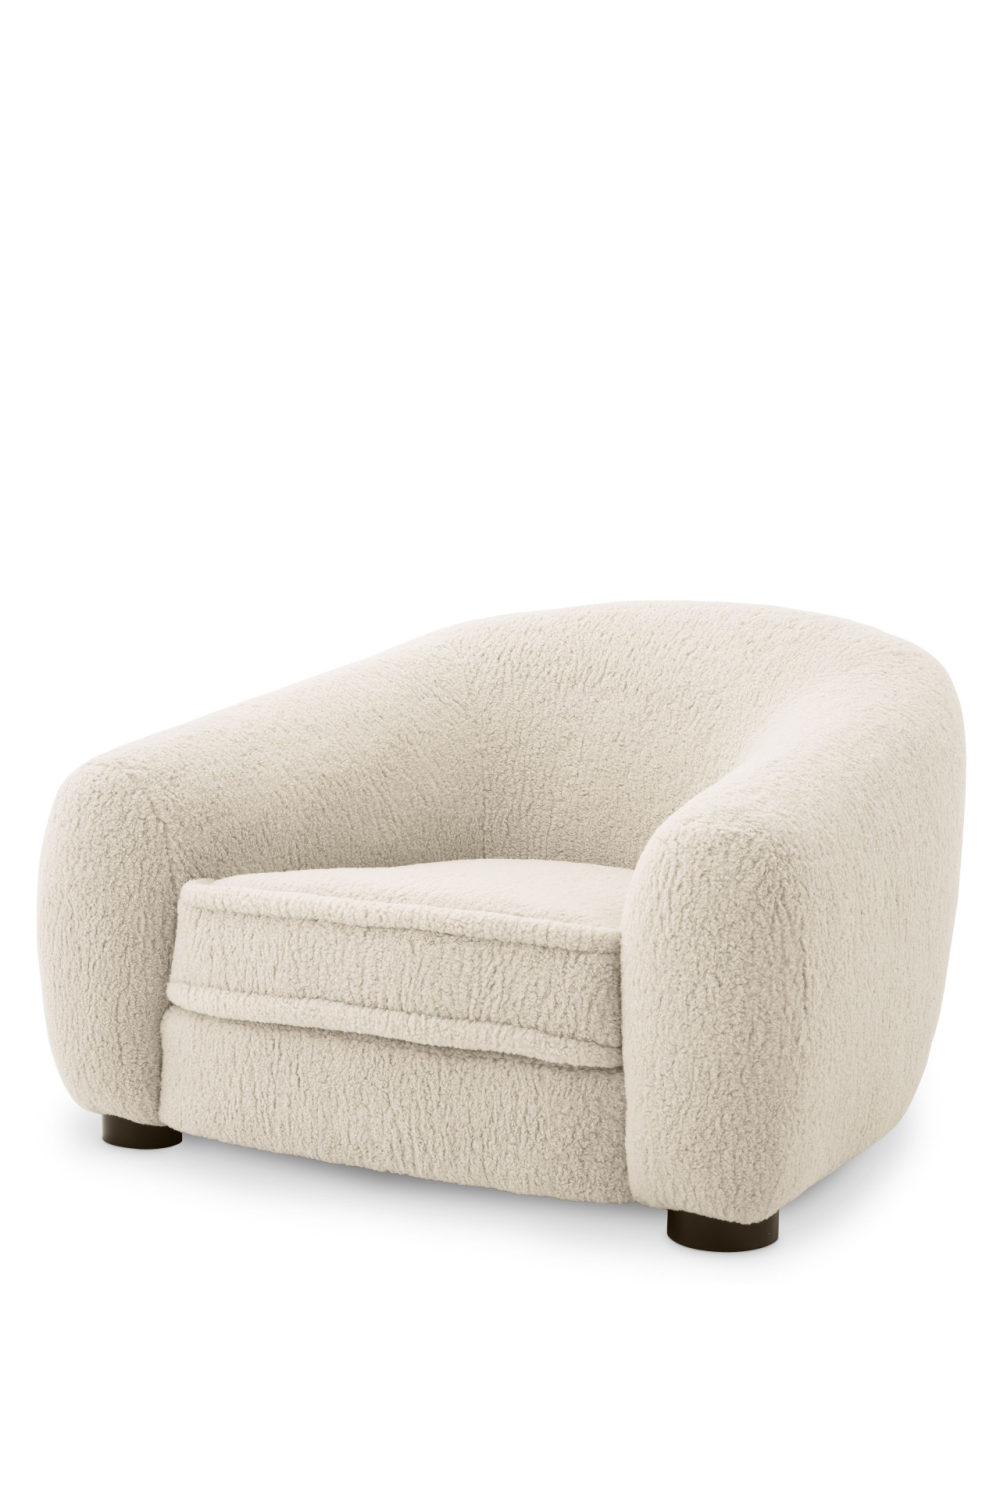 Brisbane Cream Accent Chair | Eichholtz Freud | #1 Eichholtz Retailer